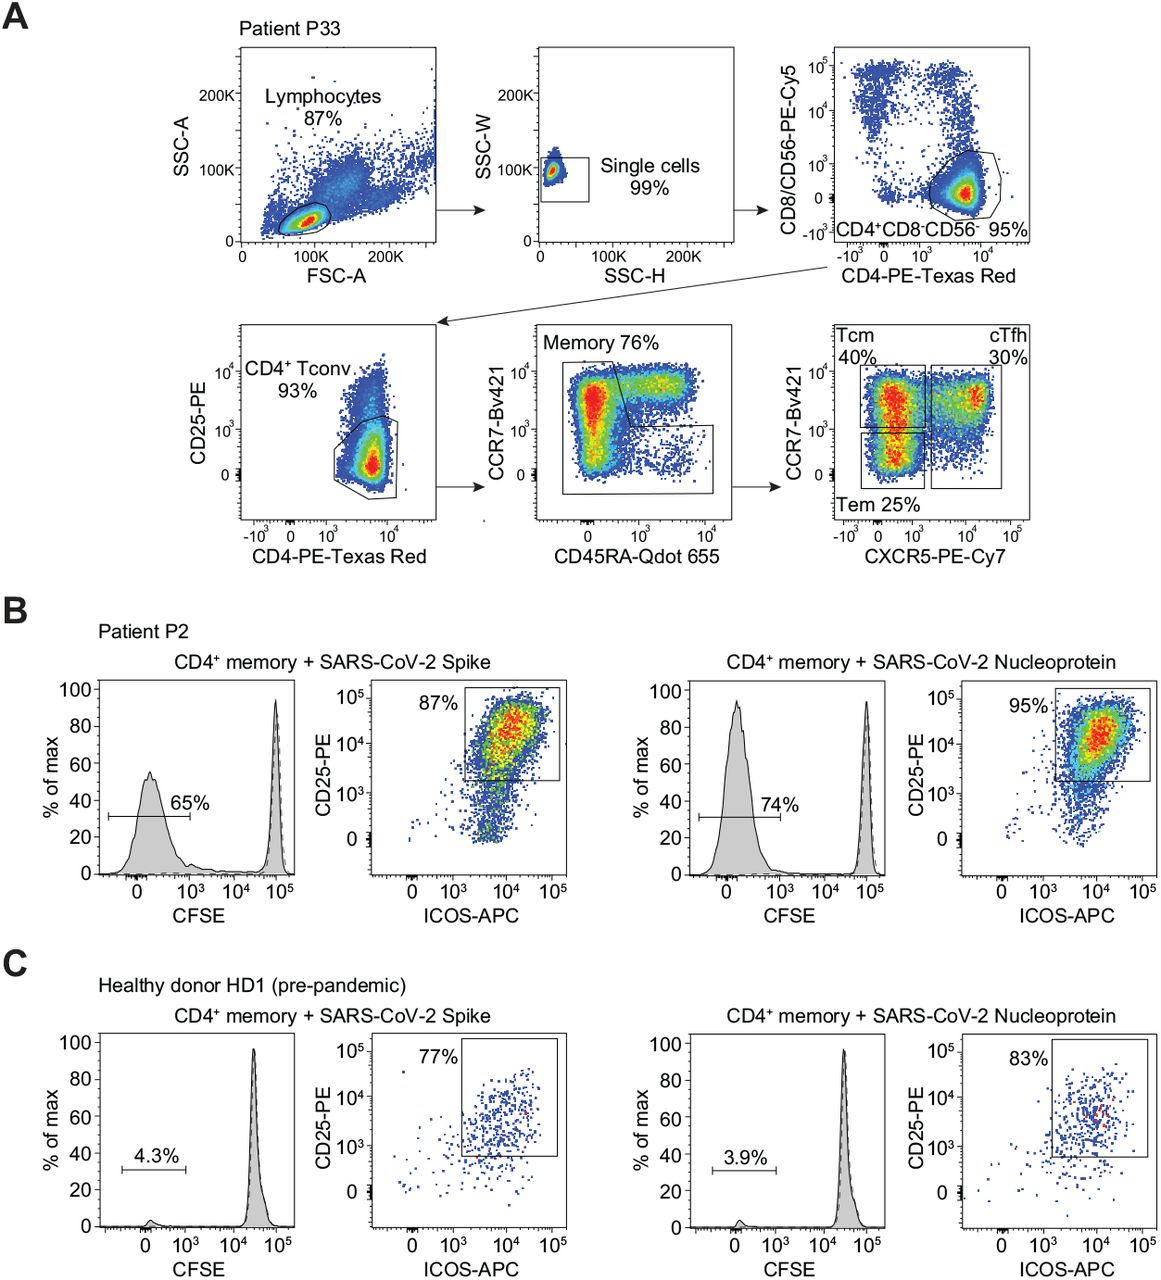 Sorting of T cell subsets and identification of SARS-CoV-2 Spike- and Nucleoprotein-reactive CD4 + T cells in COVID-19 and pre-pandemic samples. ( A ) Sorting strategy to isolate CD4 + total memory T cells and Tcm, Tem and cTfh subsets. ( B, C ) Characterization of antigen-specific T cells by CFSE dilution combined with CD25 and ICOS co-expression at day 7 following stimulation with Spike or Nucleoprotein in the presence of autologous monocytes. Negative controls of T cells cultured with monocytes alone are reported as dashed lines. Shown are data from patient P2 and from a pre-pandemic healthy donor sample (HD1).